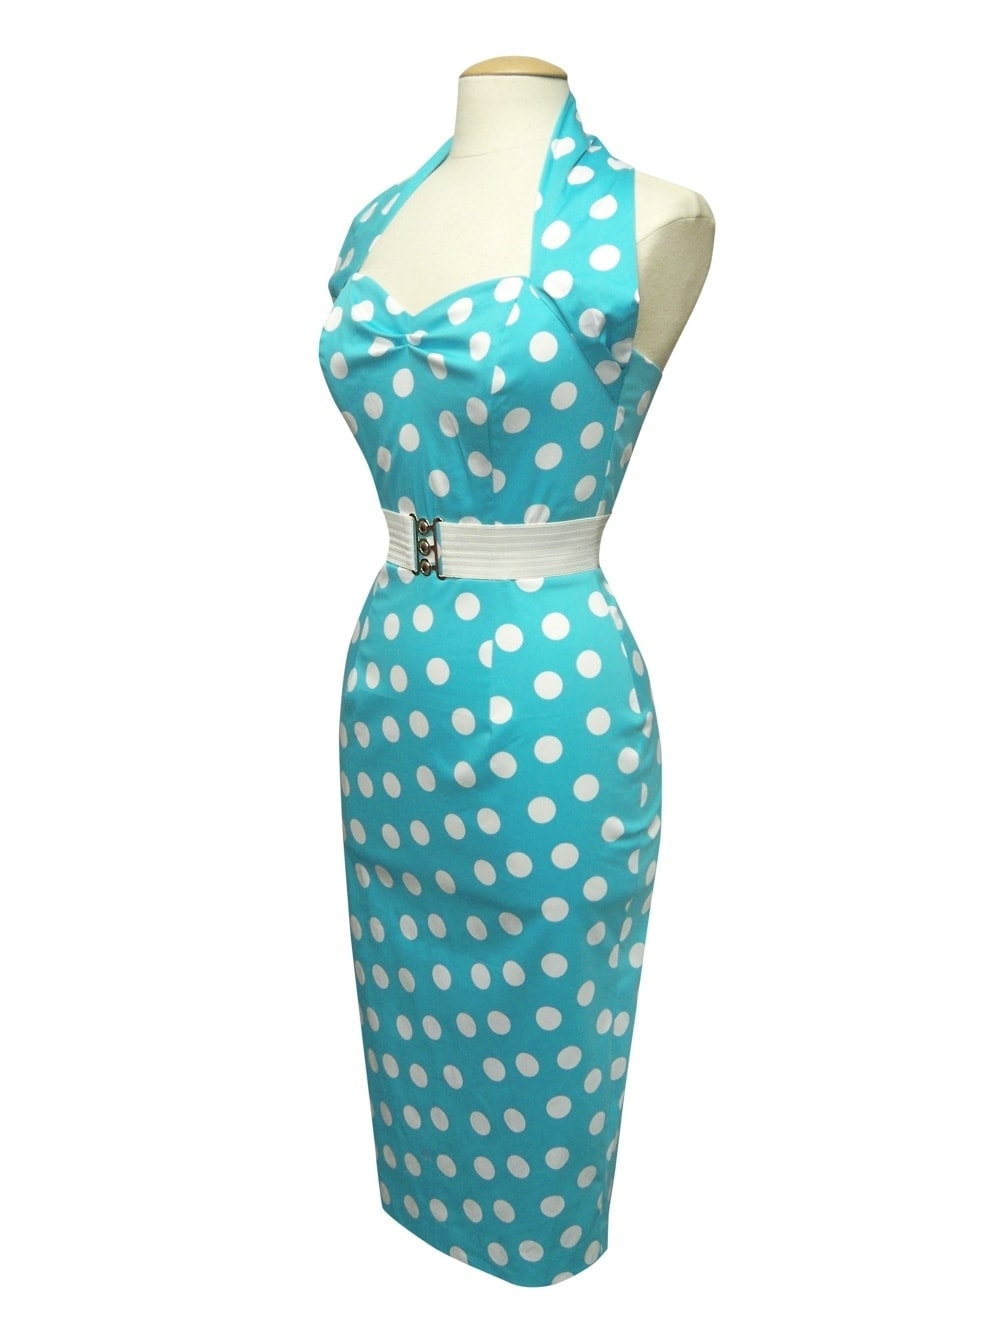 1950s Halterneck Pencil Turquoise Polkadot Dress From